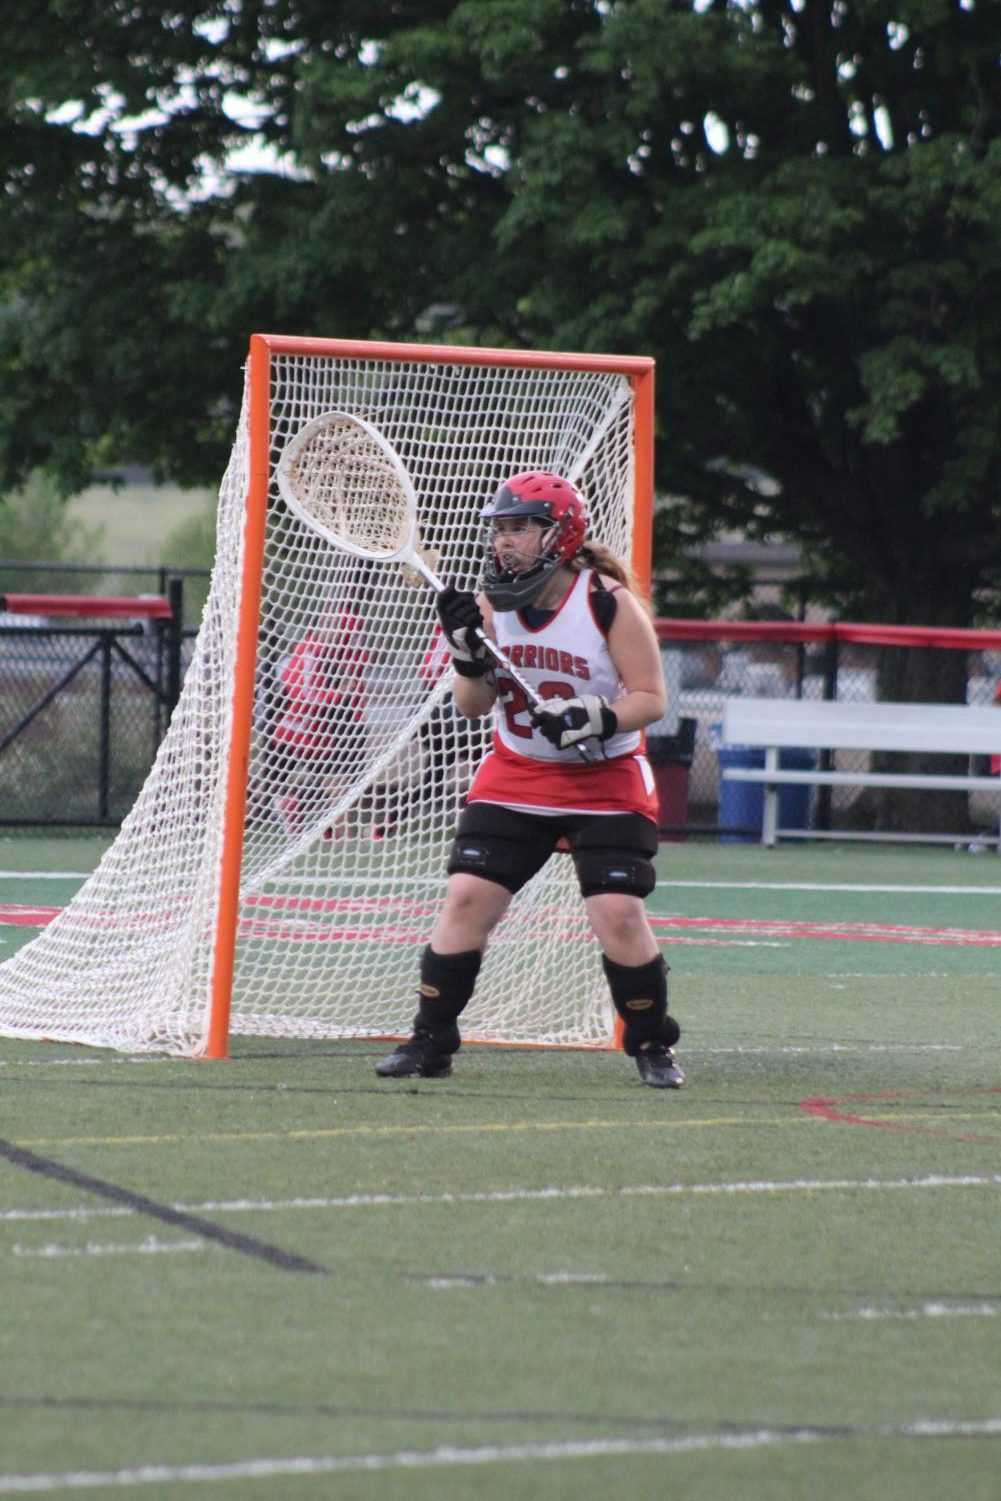 Junior+JV+goalie+Caitlyn+Keener%2C+with+eyes+on+the+ball%2C+is+ready+for+the+opposing+attacker+to+take+a+shot.+Keener+went+into+the+game+in+the+second+half+when+the+warriors+were+up+by+double-digit+points.+The+Lady+Warriors+beat+Dover+18-4.%0APhotograph+by+Stephanie+Graffin